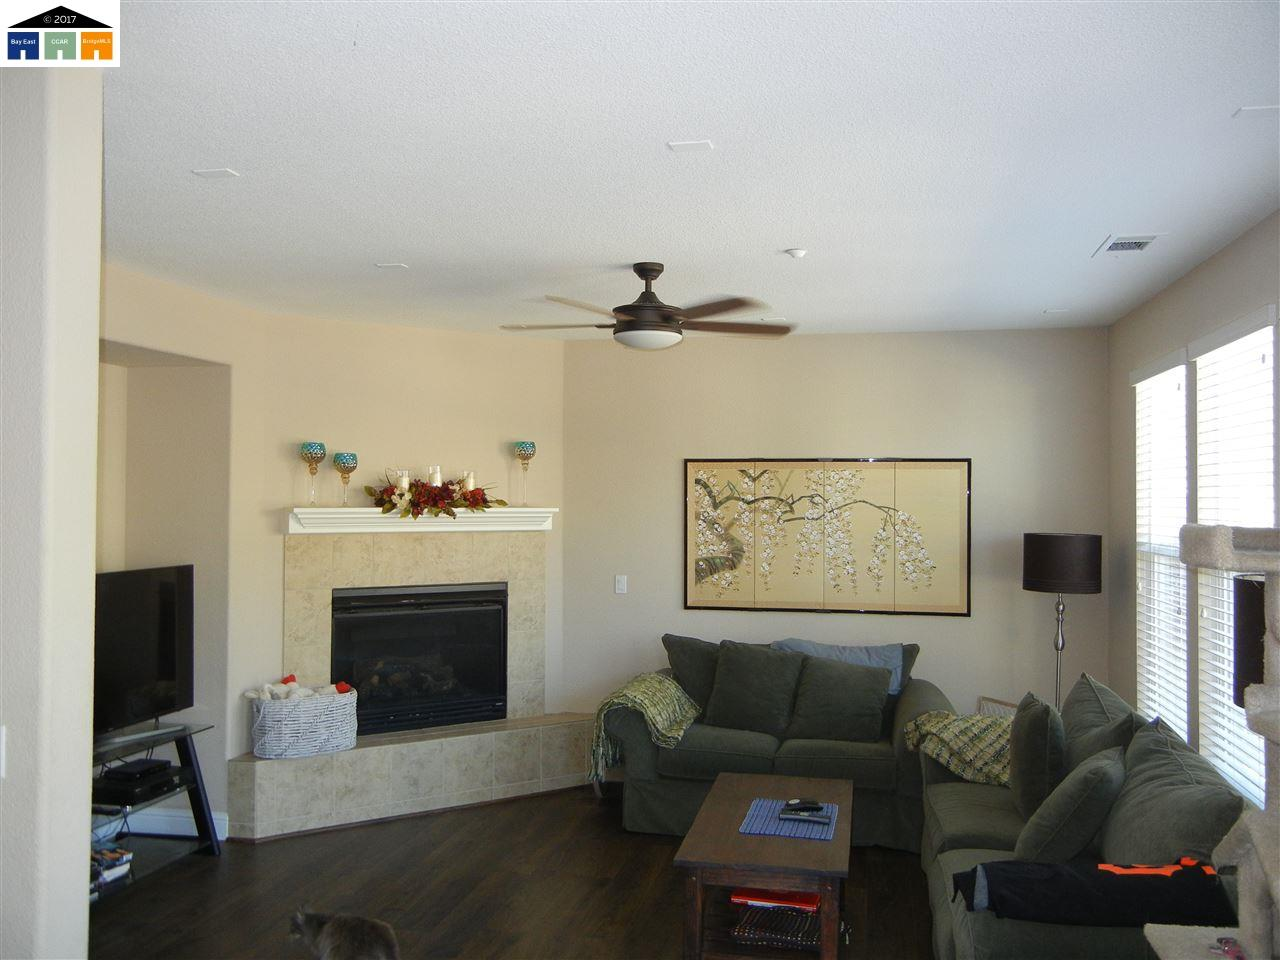 Additional photo for property listing at 49 Nettle 49 Nettle Oakley, California 94561 Estados Unidos